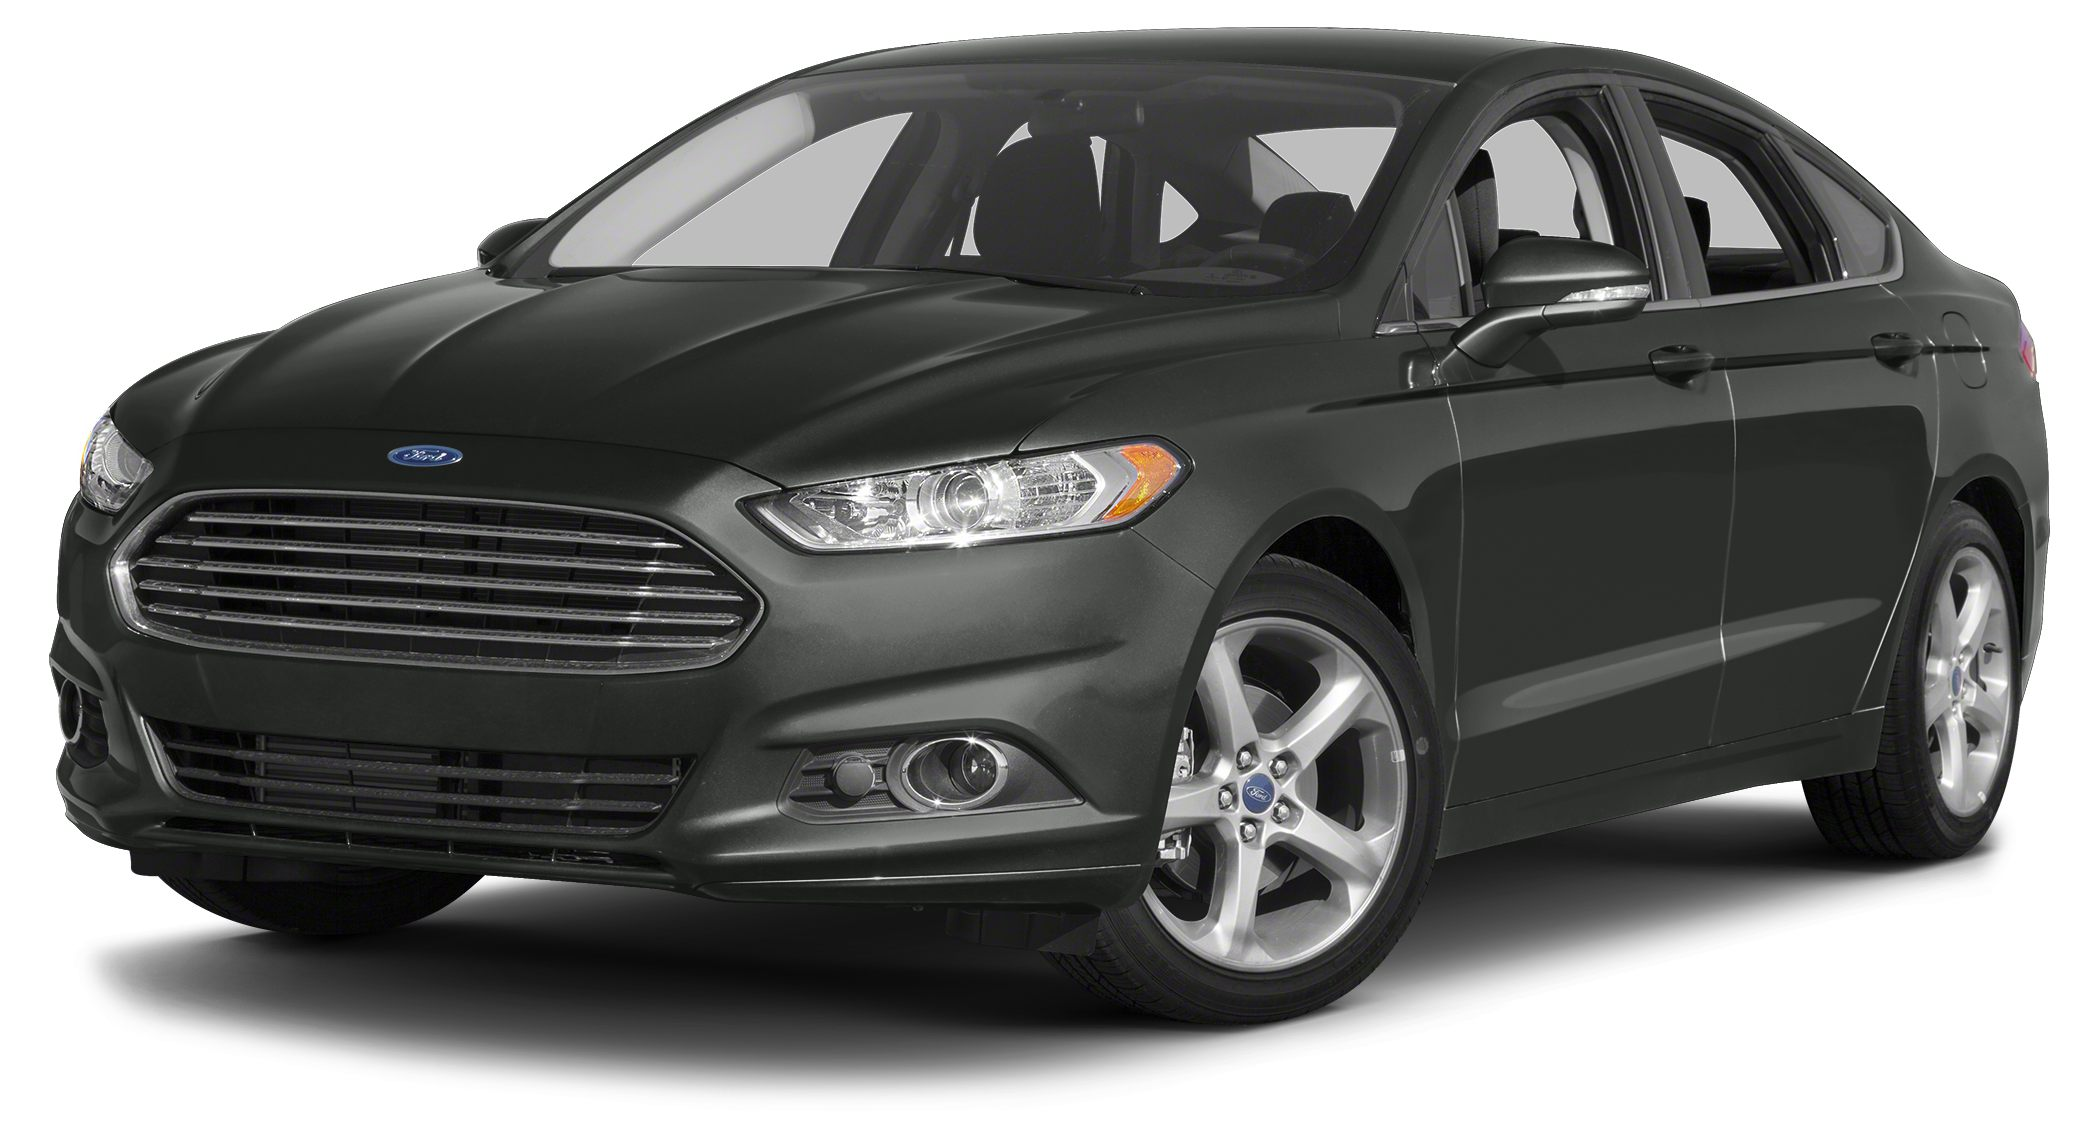 2016 Ford Fusion SE Drive this home today Introducing the 2016 Ford Fusion Youll appreciate its